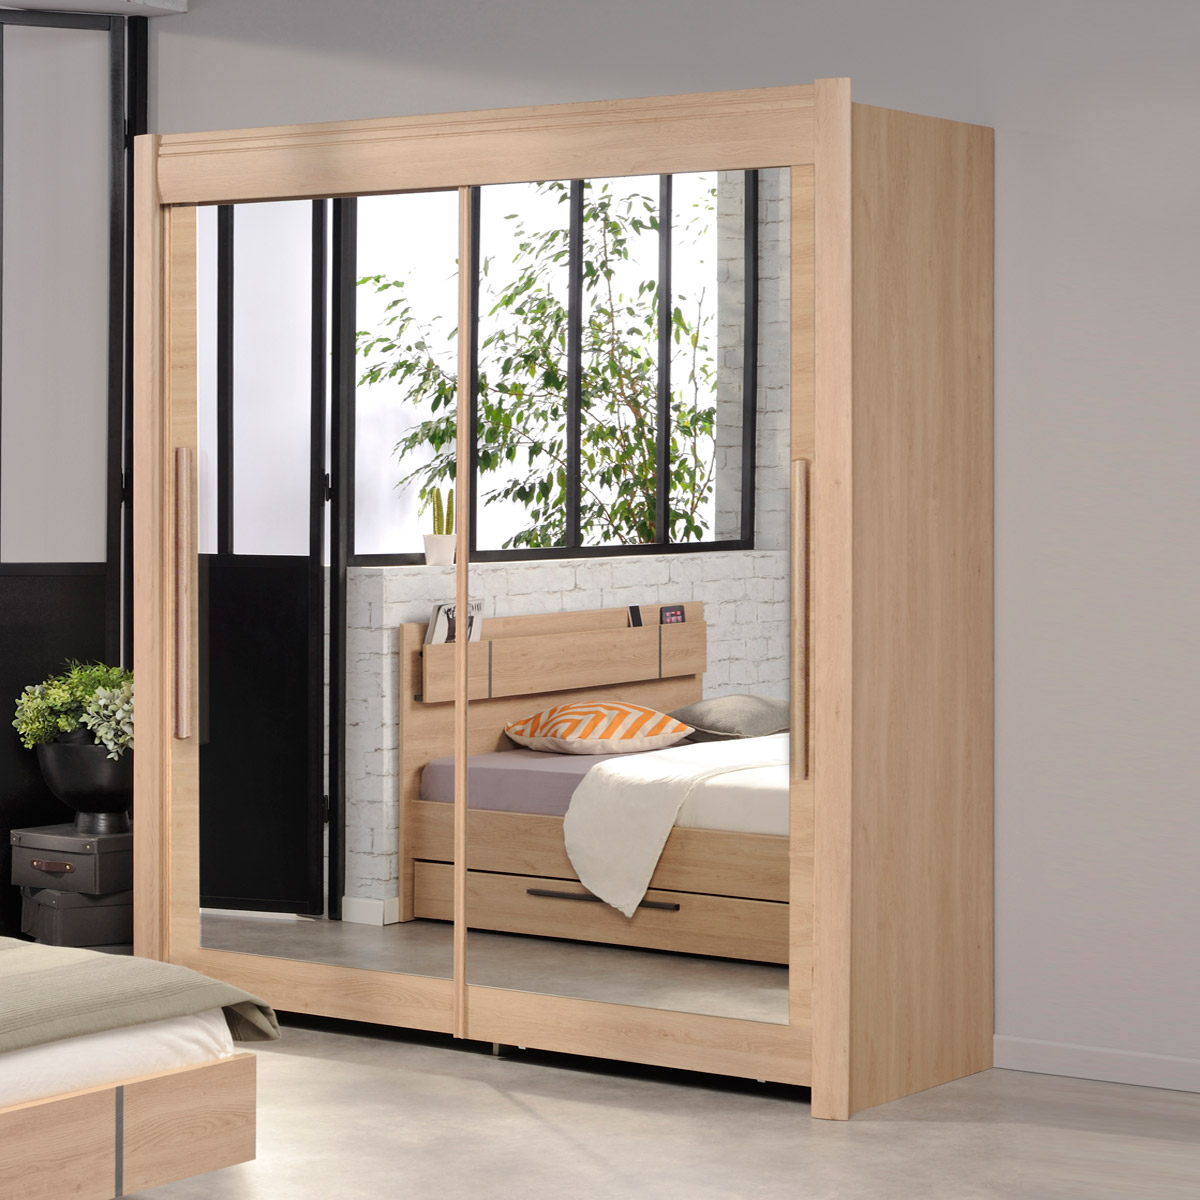 schwebet renschrank celebrity kleiderschrank schrank in wei braun oder eiche ebay. Black Bedroom Furniture Sets. Home Design Ideas